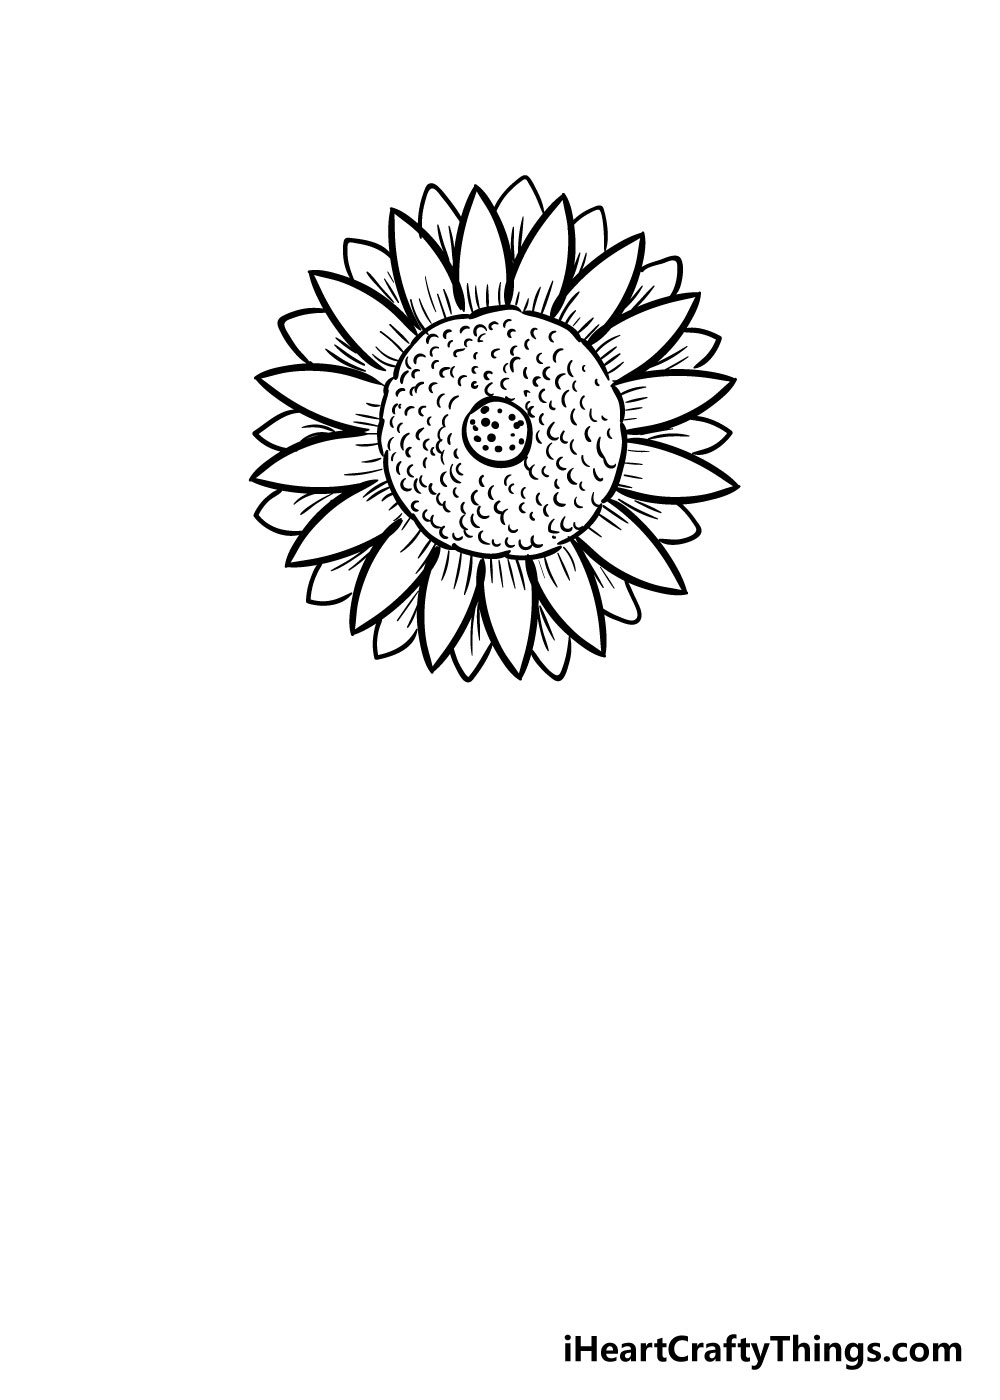 sunflower coloring step 7